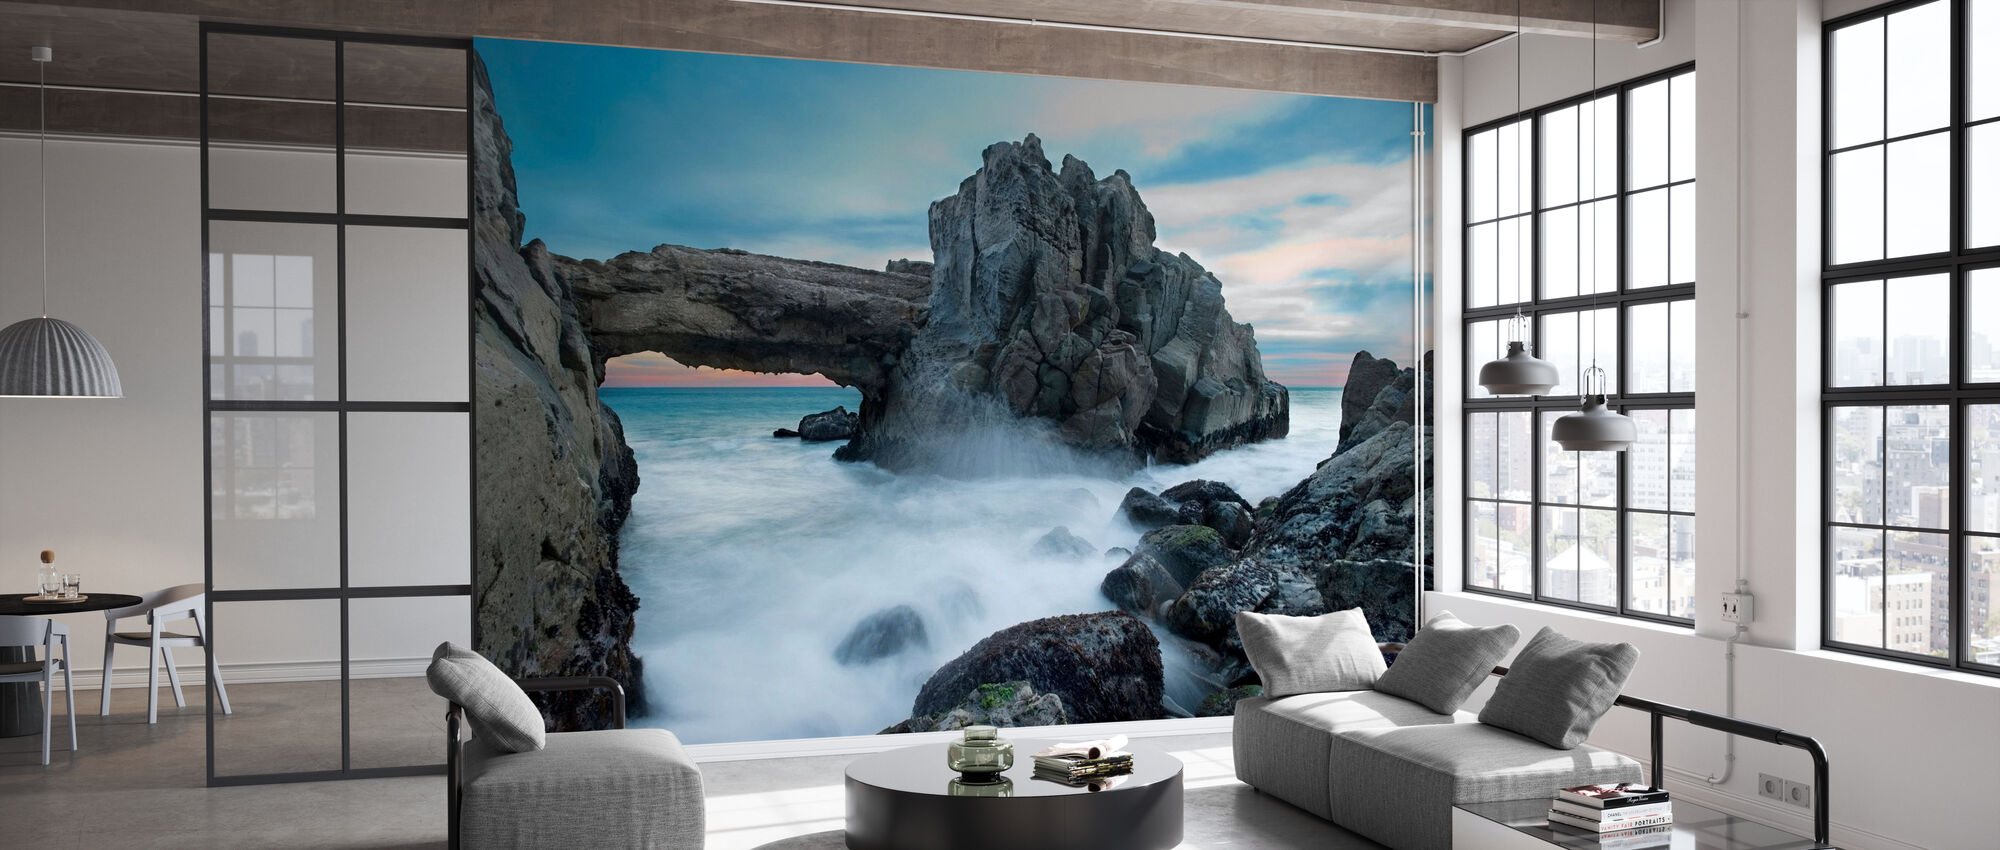 Dramatic Archway - Wallpaper - Office